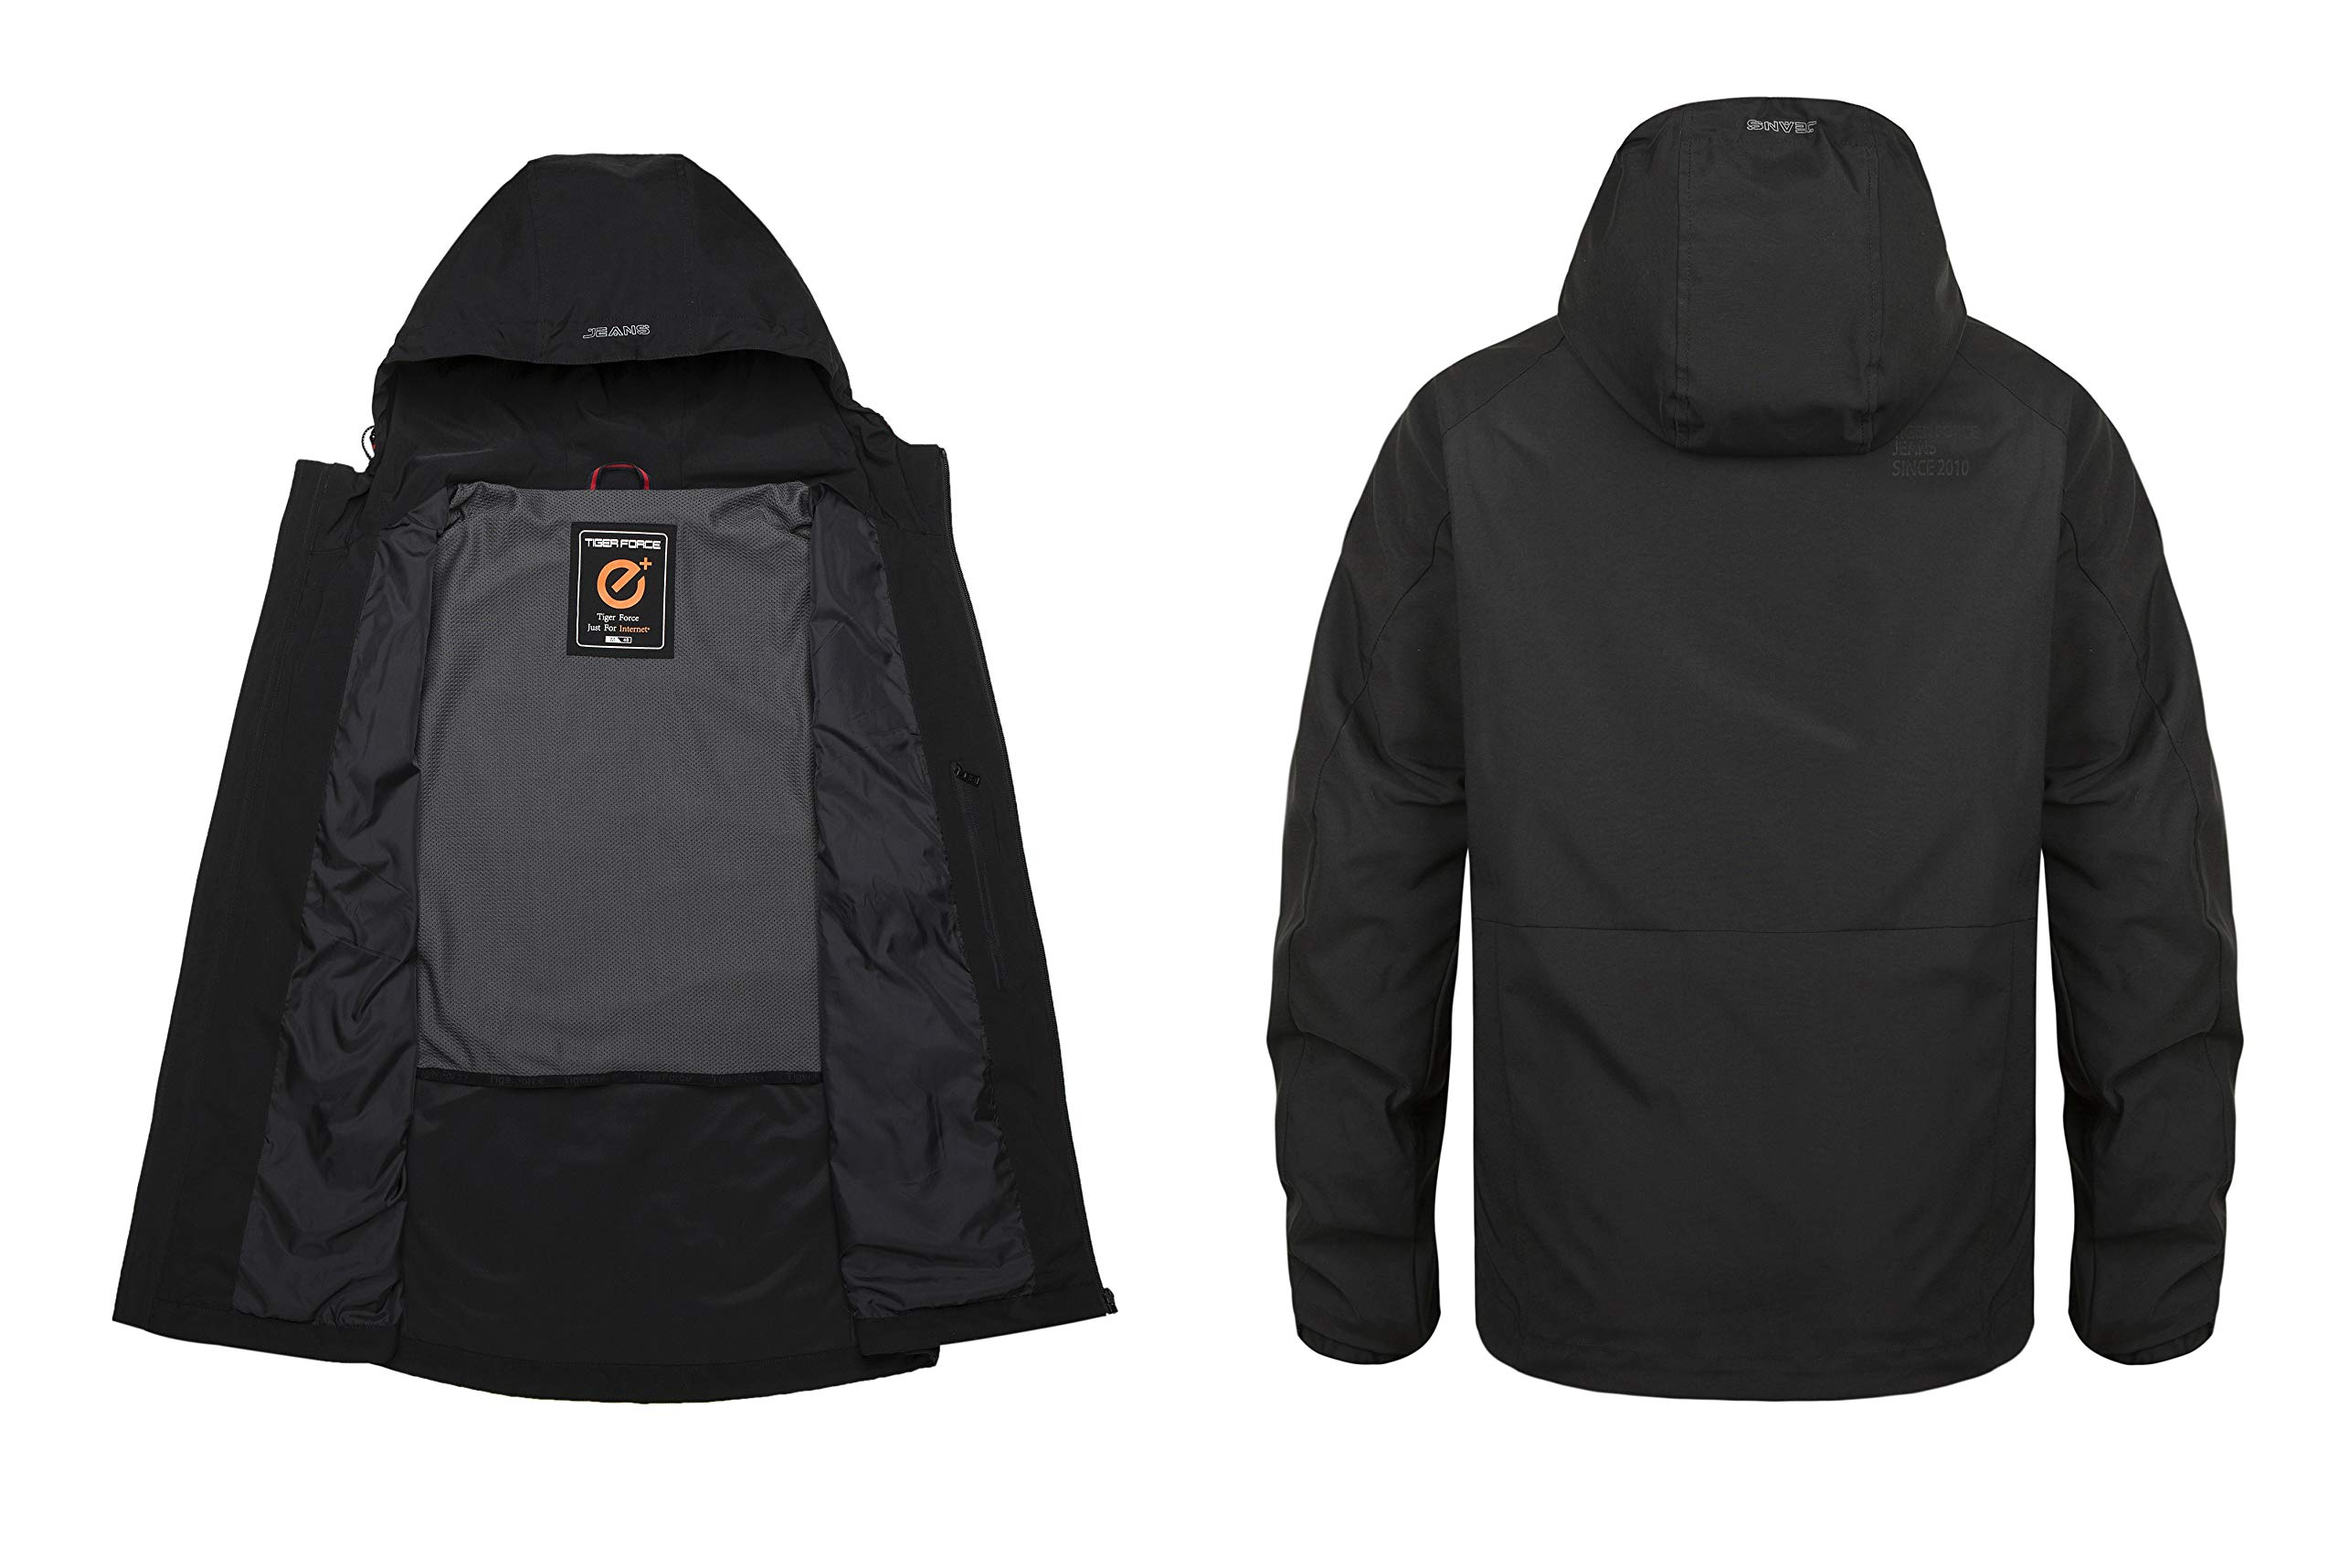 TIGER FORCE Windbreaker Active Jacket Men Insulated Quilted Lined Coat Casual Shell with Hoodie